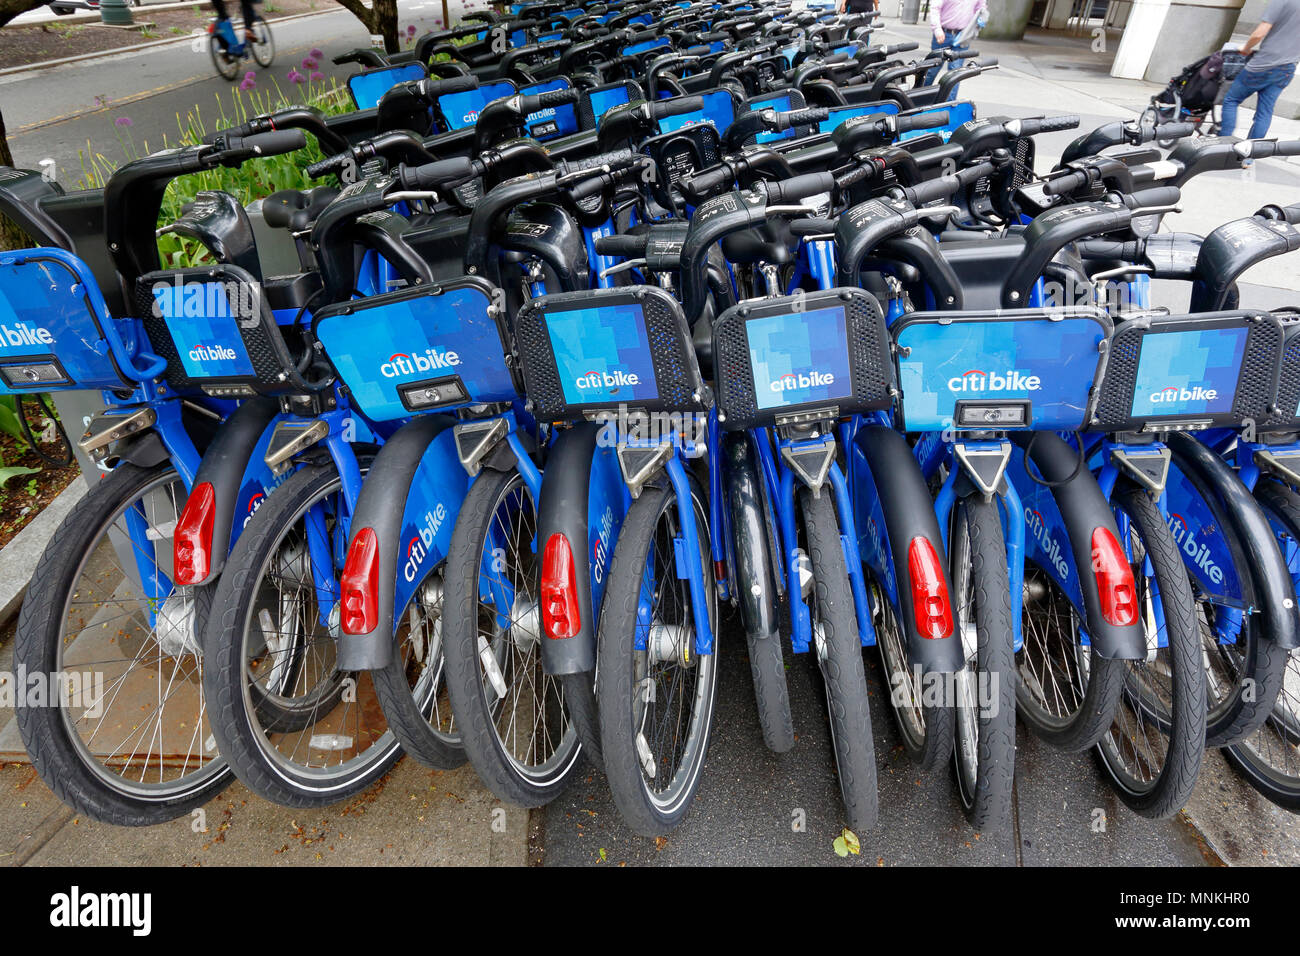 Citibikes piled together at a valet station - Stock Image